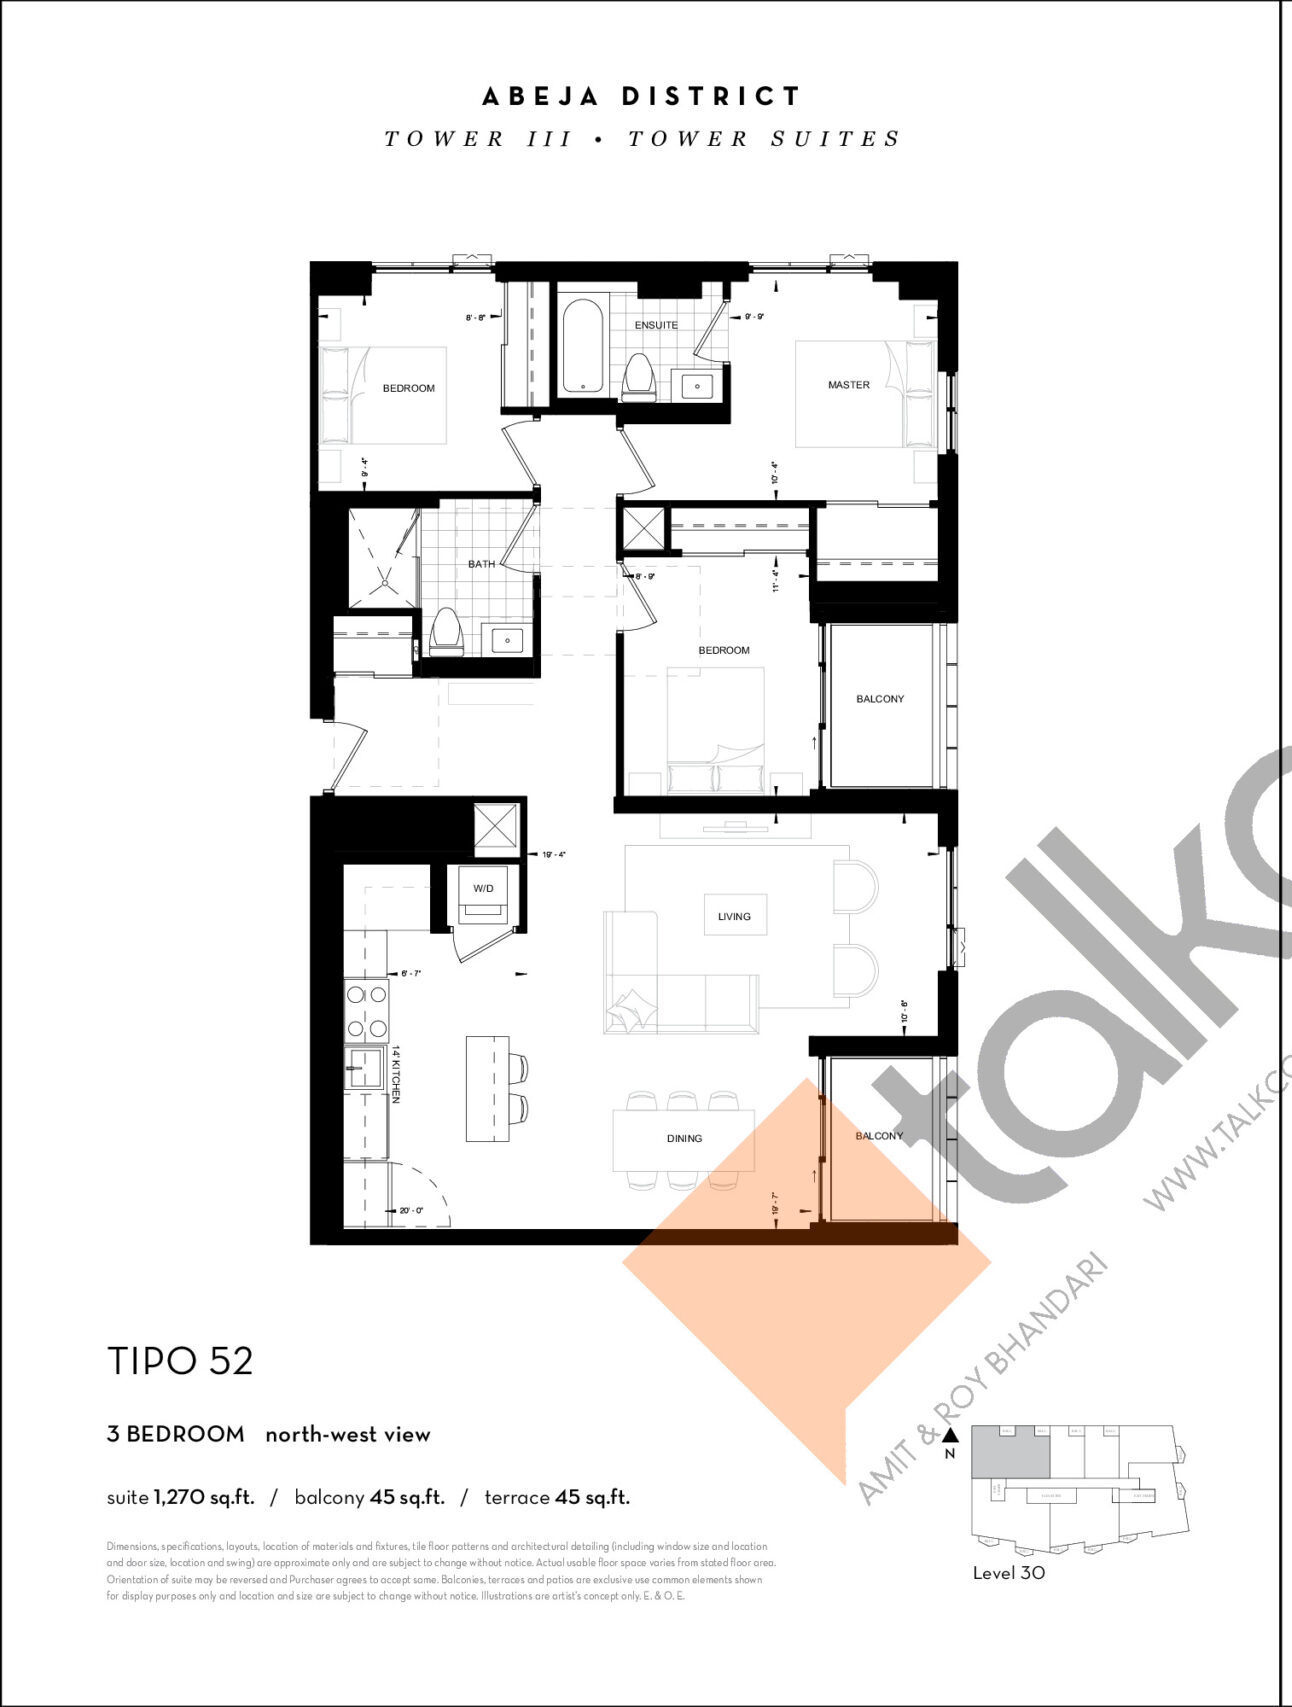 TIPO 52 Floor Plan at Abeja District Condos Tower 3 - 1270 sq.ft